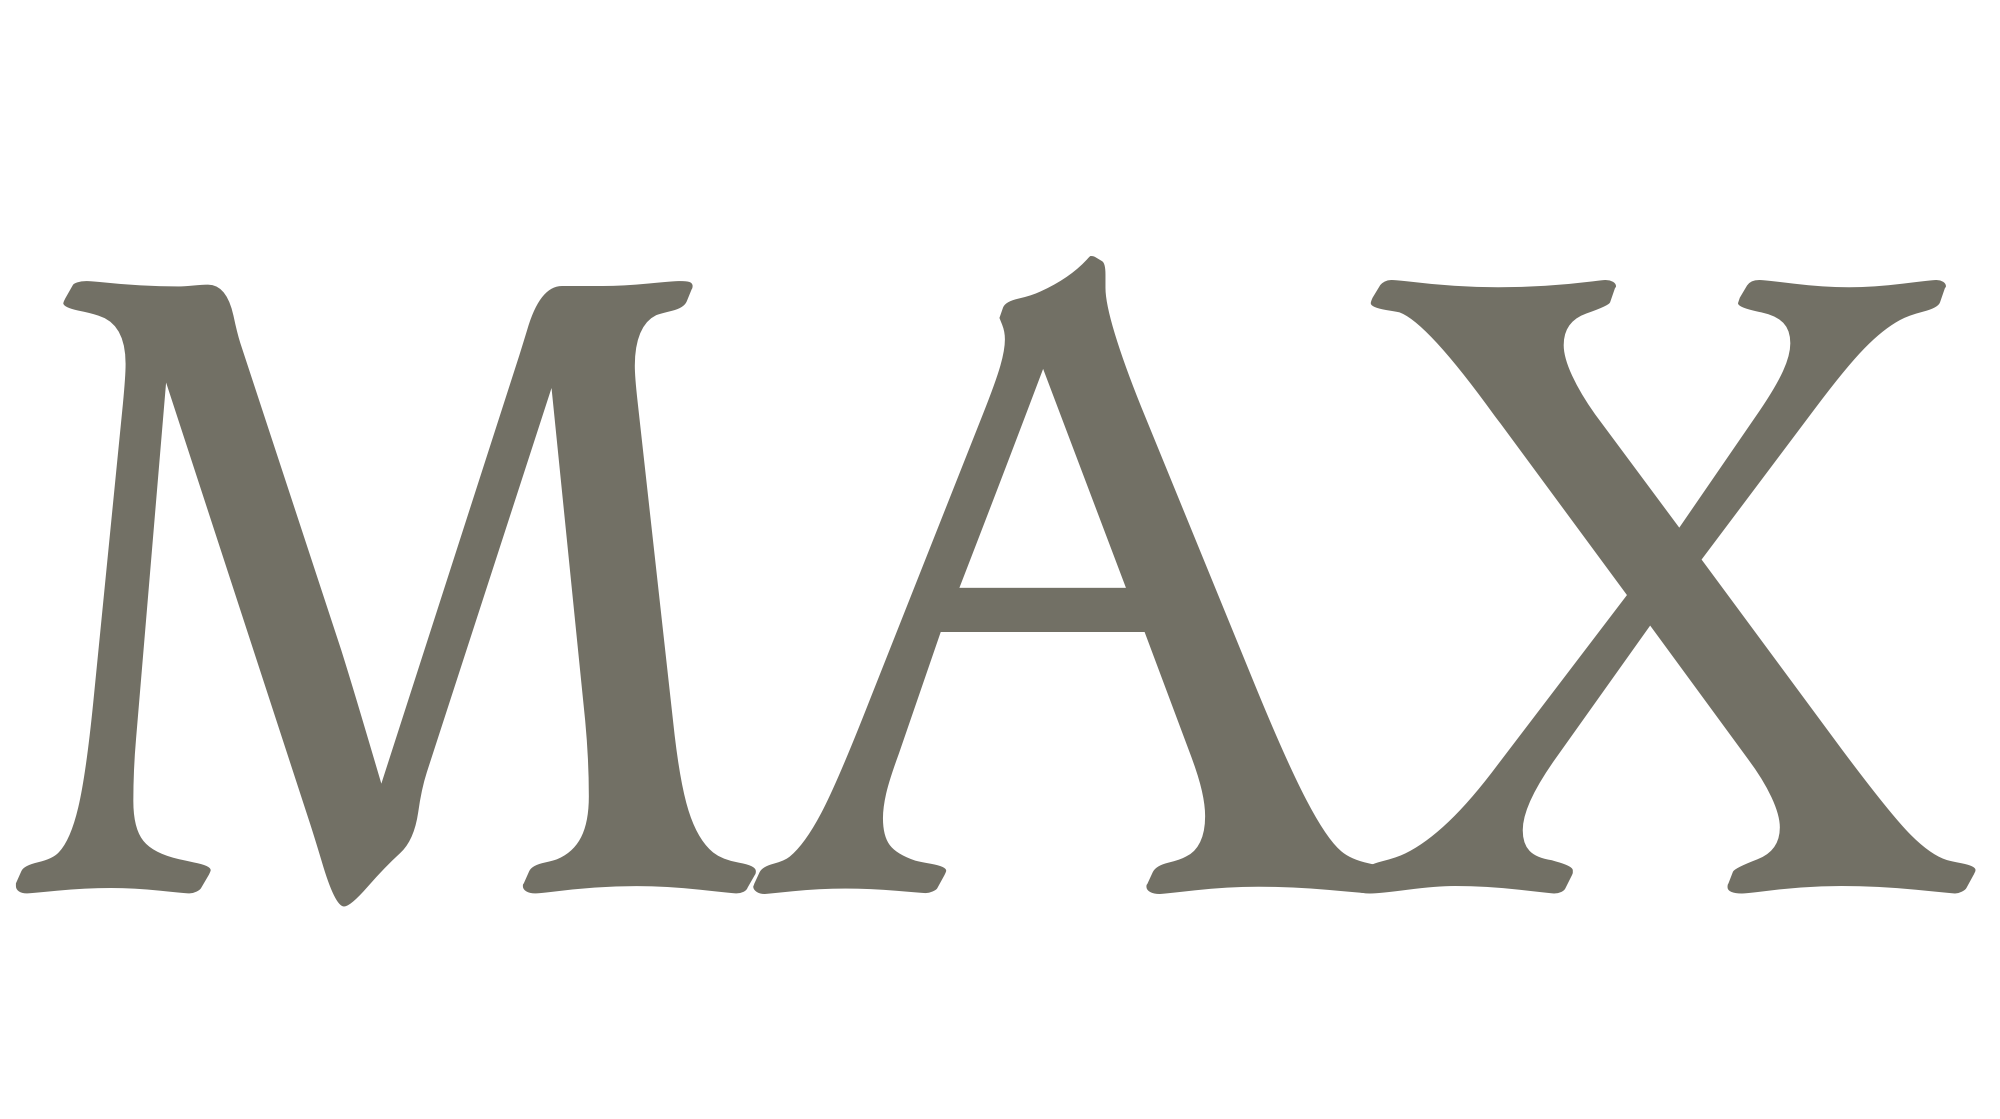 Max - Name's Meaning of Max